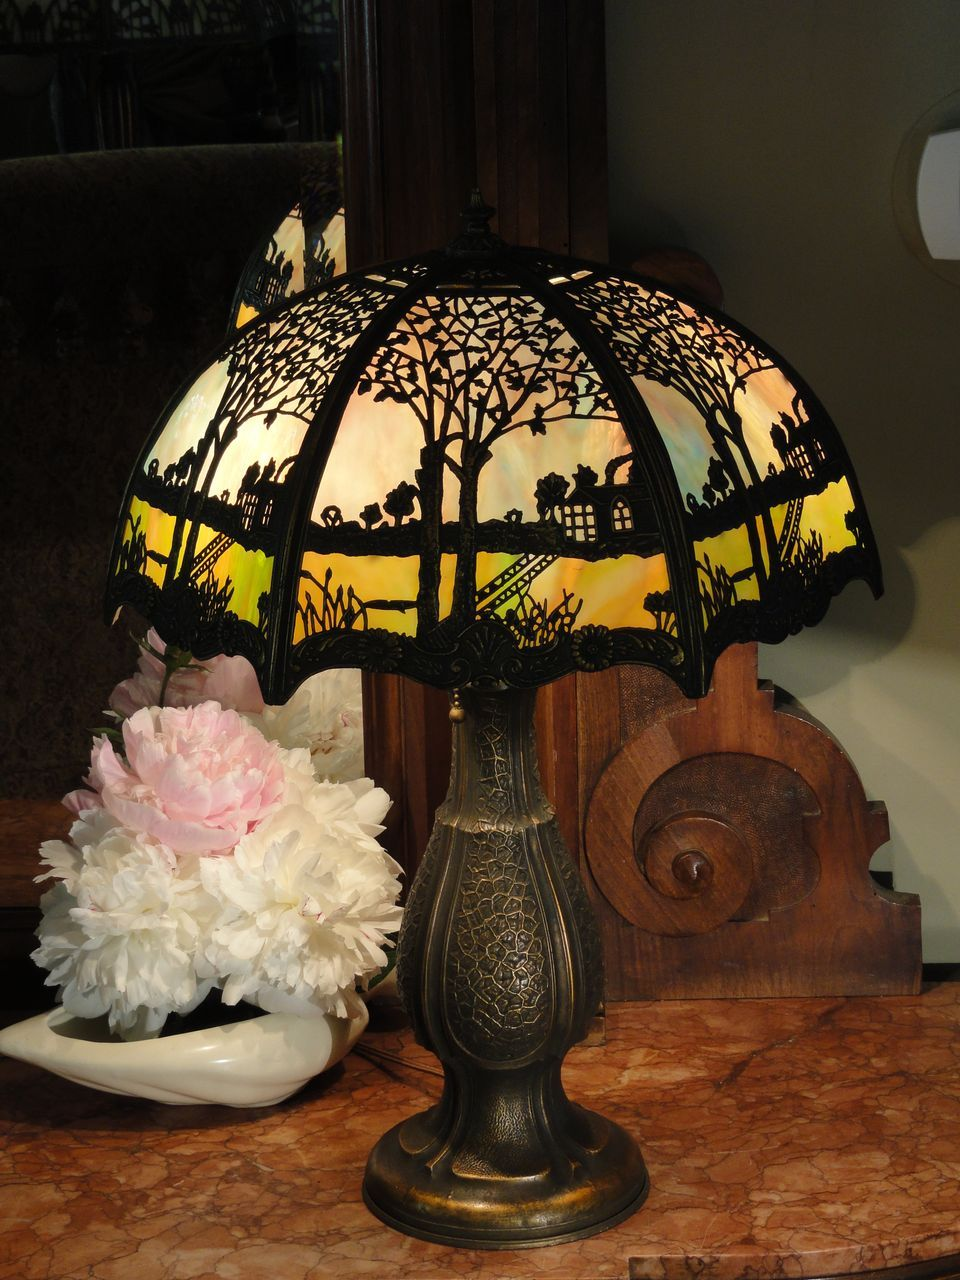 Pin on Lamps and More Lamps